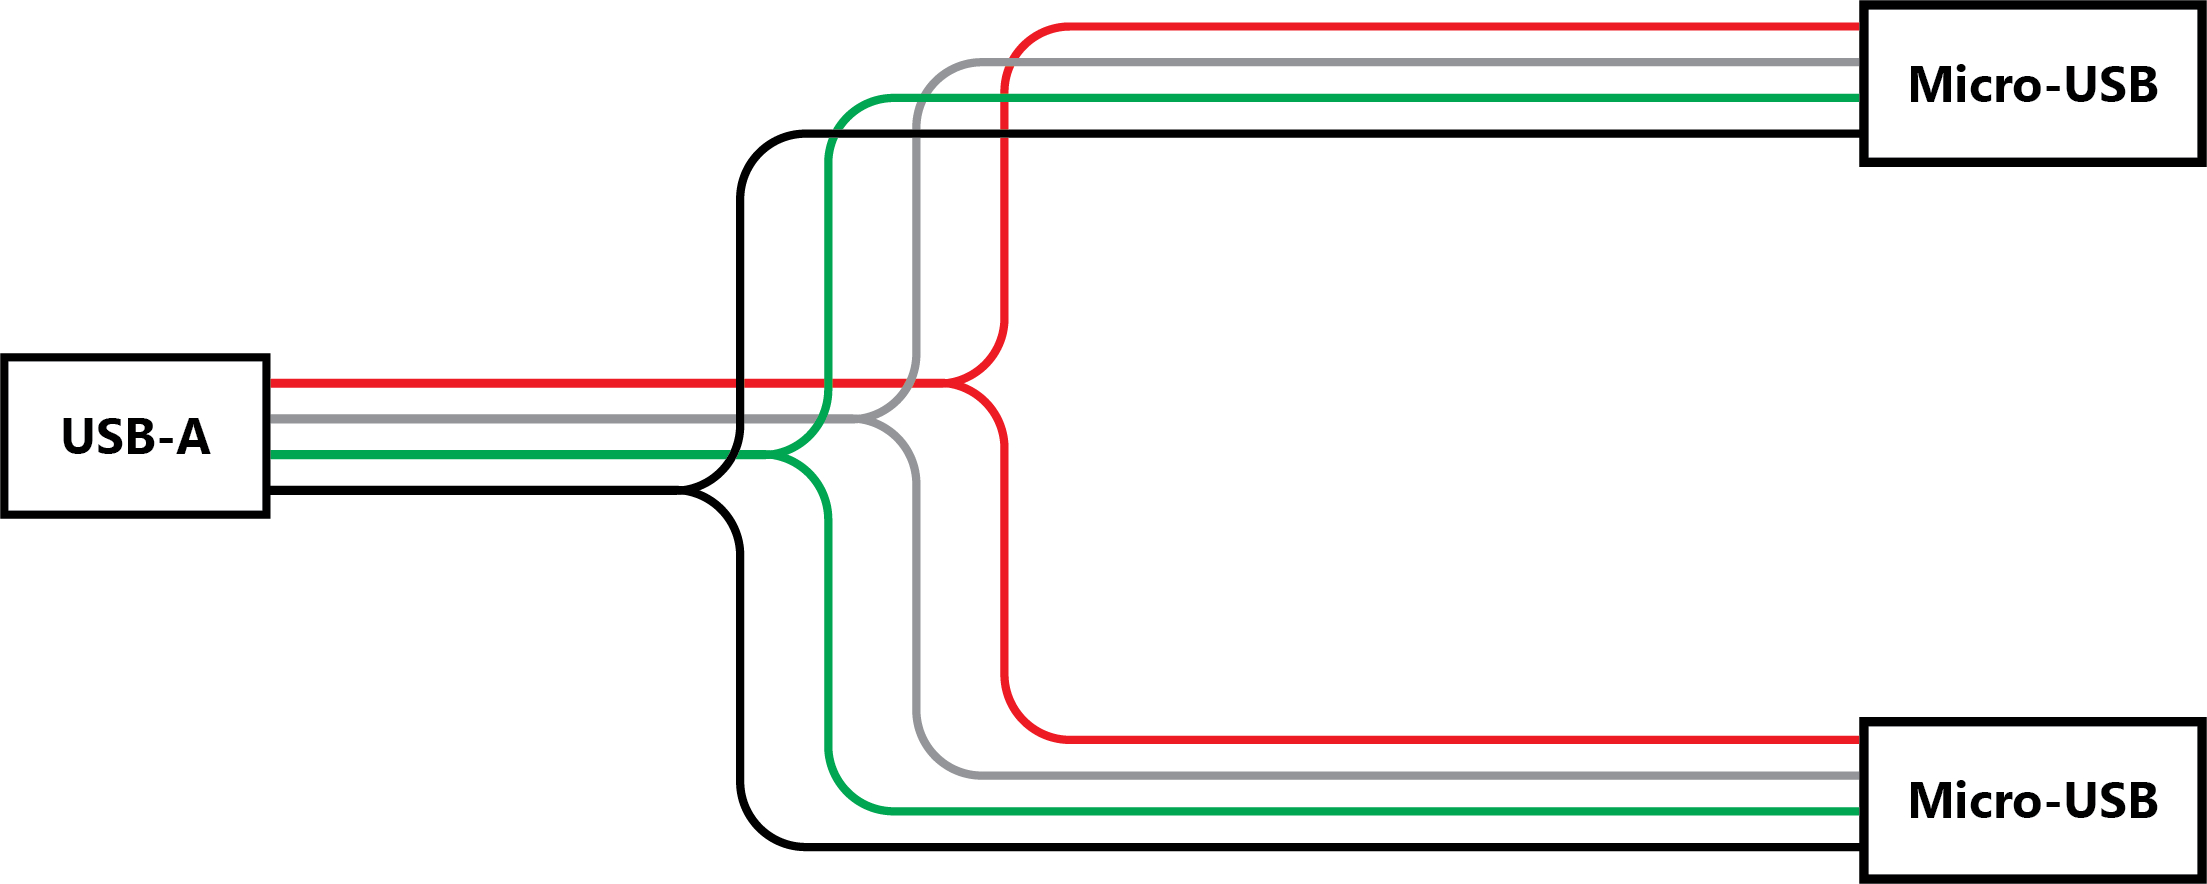 Wiring Diagram For Split Micro-Usb Cable? - Electrical Engineering - Wiring Diagram Of Micro Usb Cable